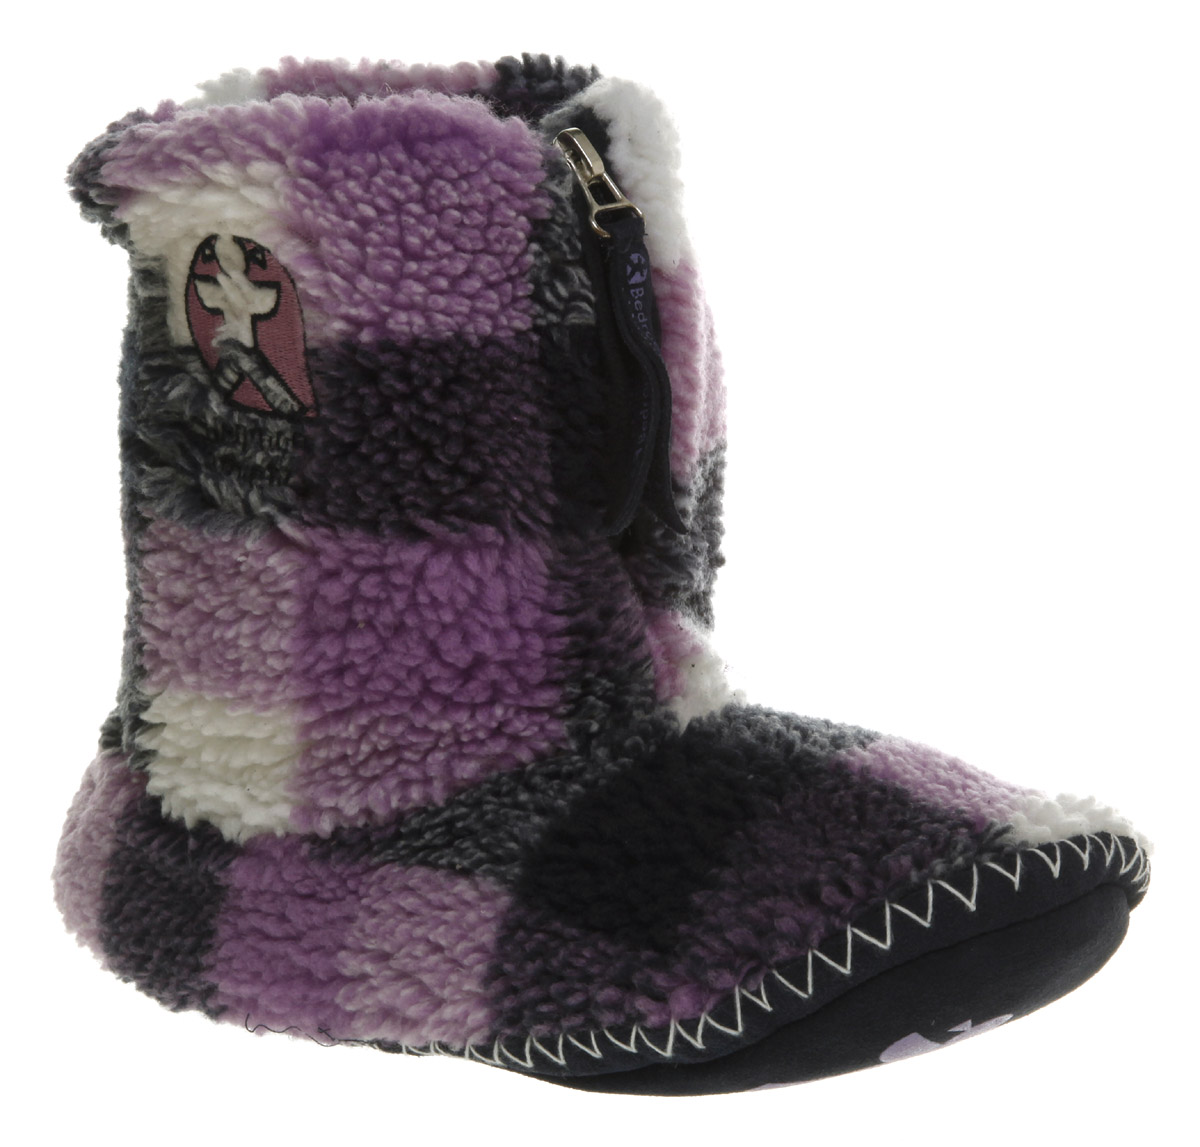 womens bedroom athletics macgraw fleece slipper navy lilac boots ebay. Black Bedroom Furniture Sets. Home Design Ideas